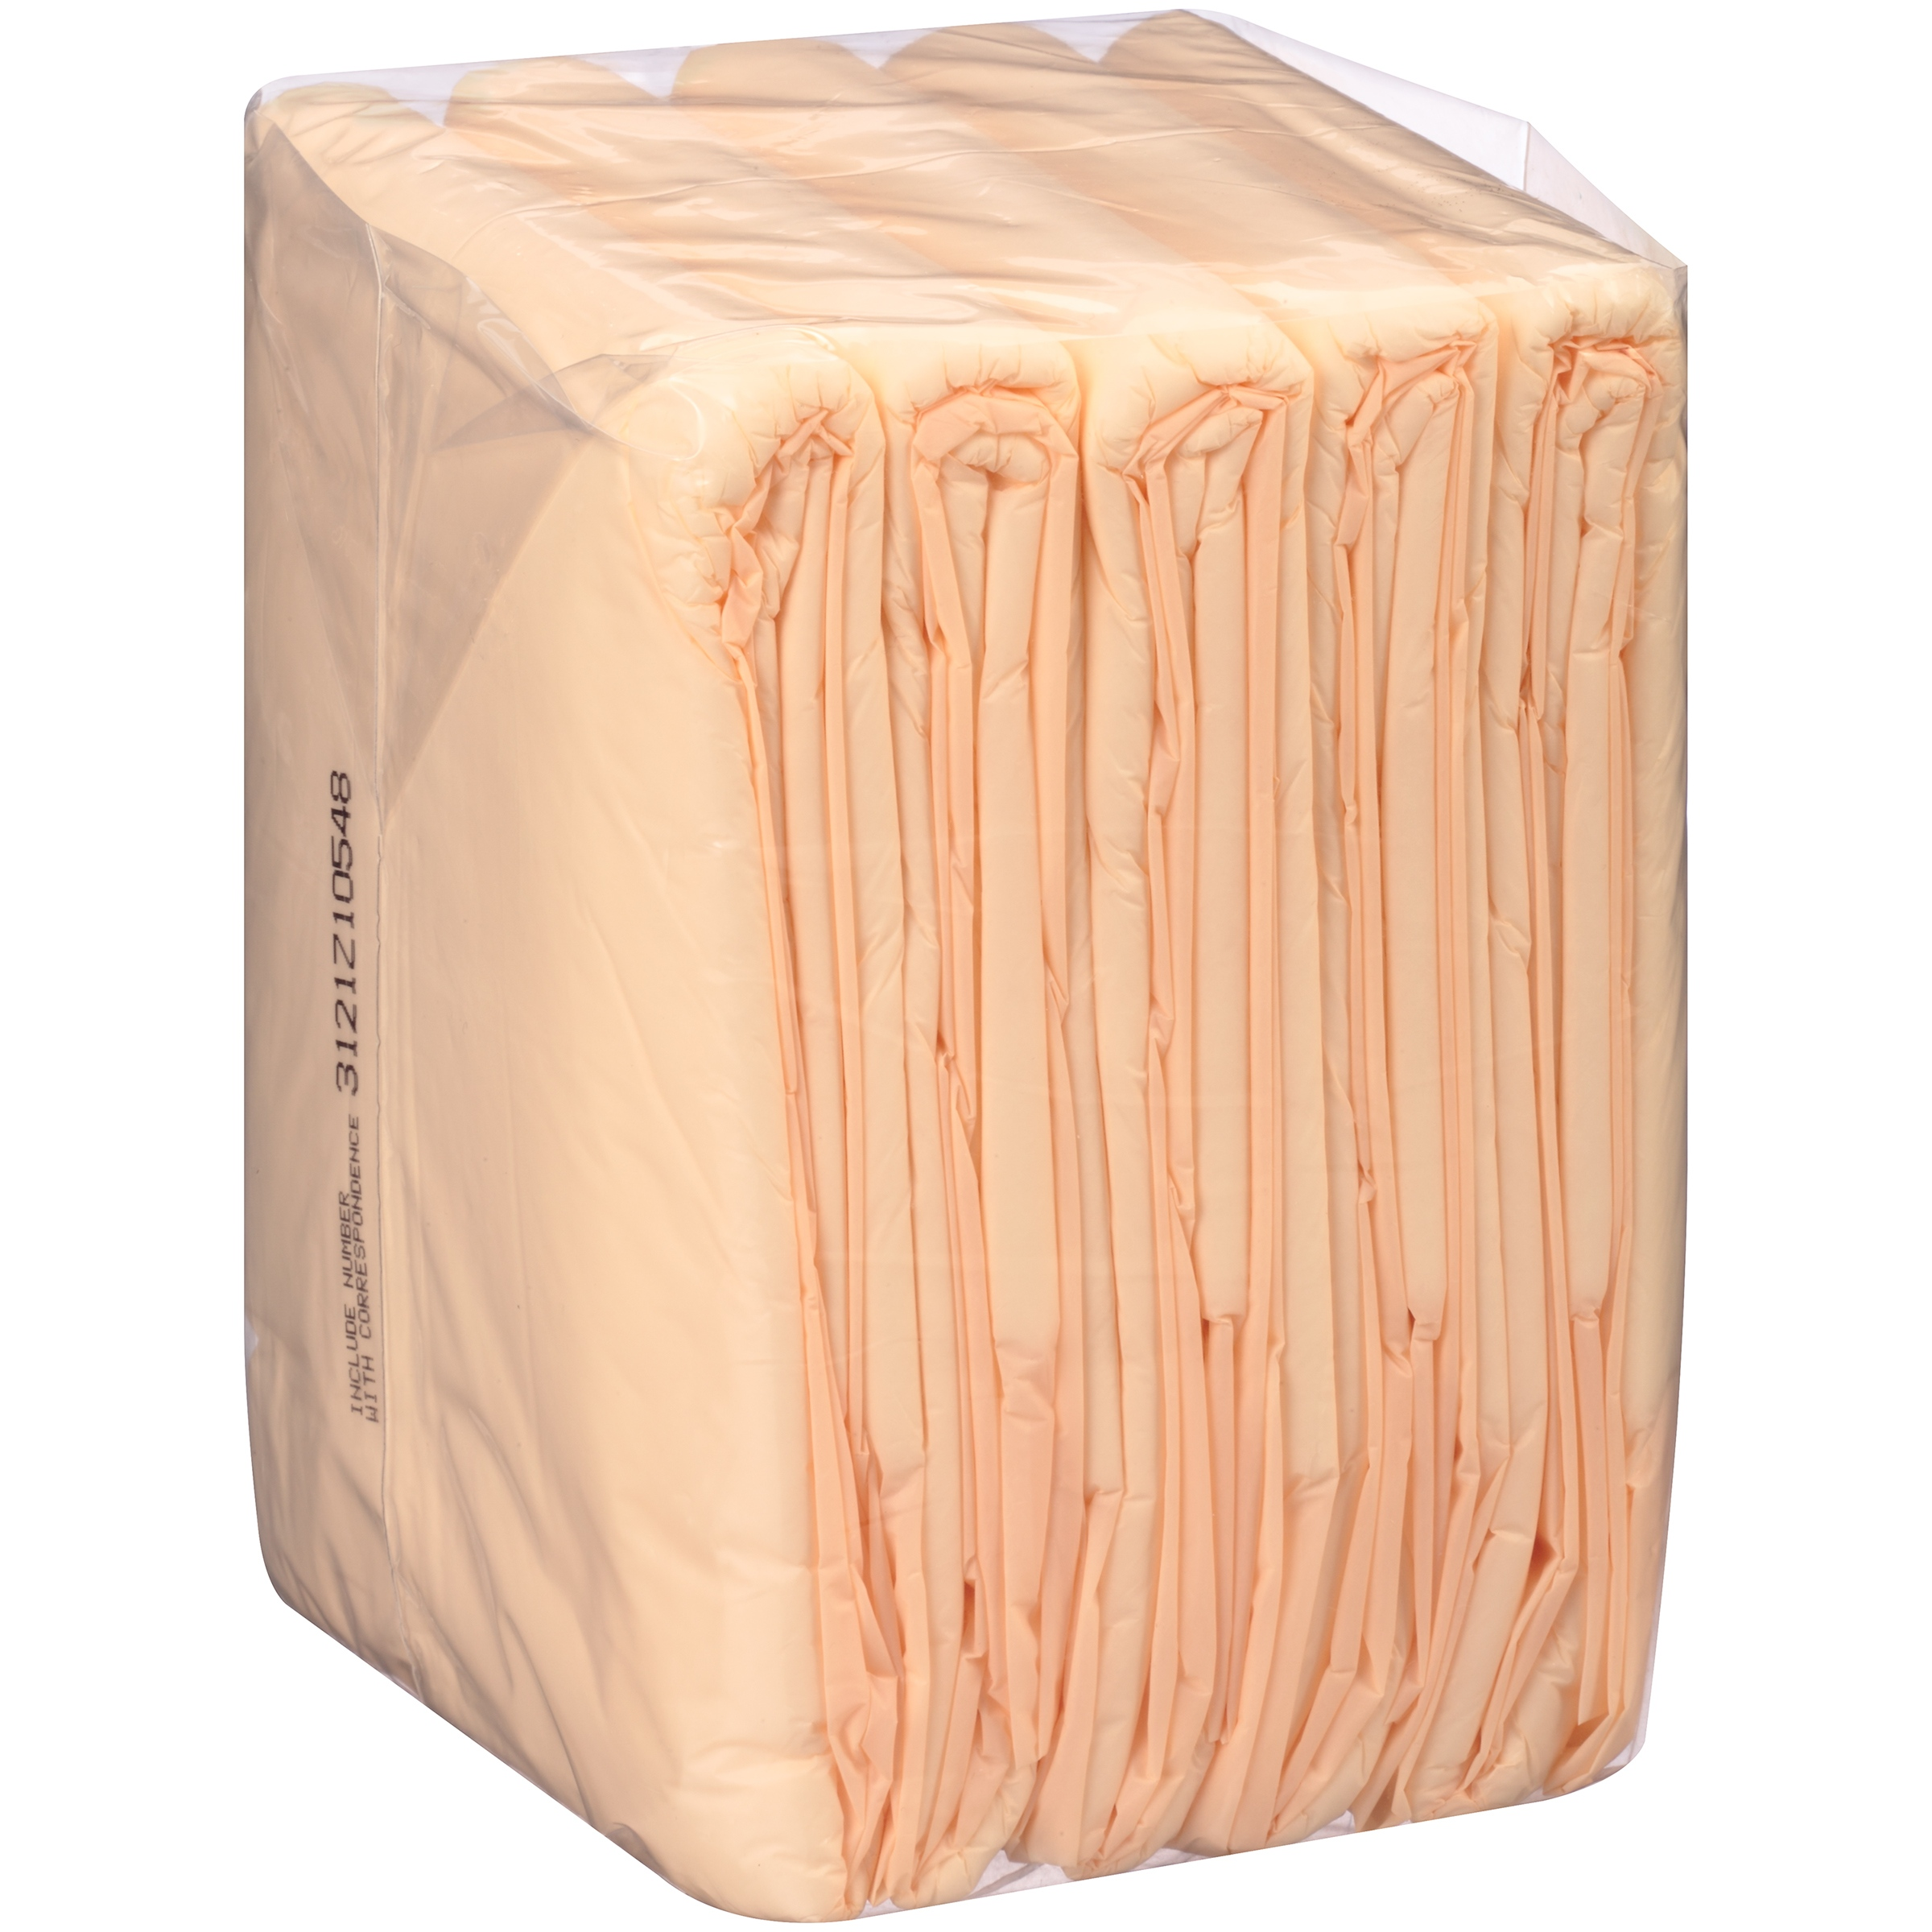 UFPP-300 Attends® Night Preserver Underpads with Polymer 30 in. x 30 in., 5 count